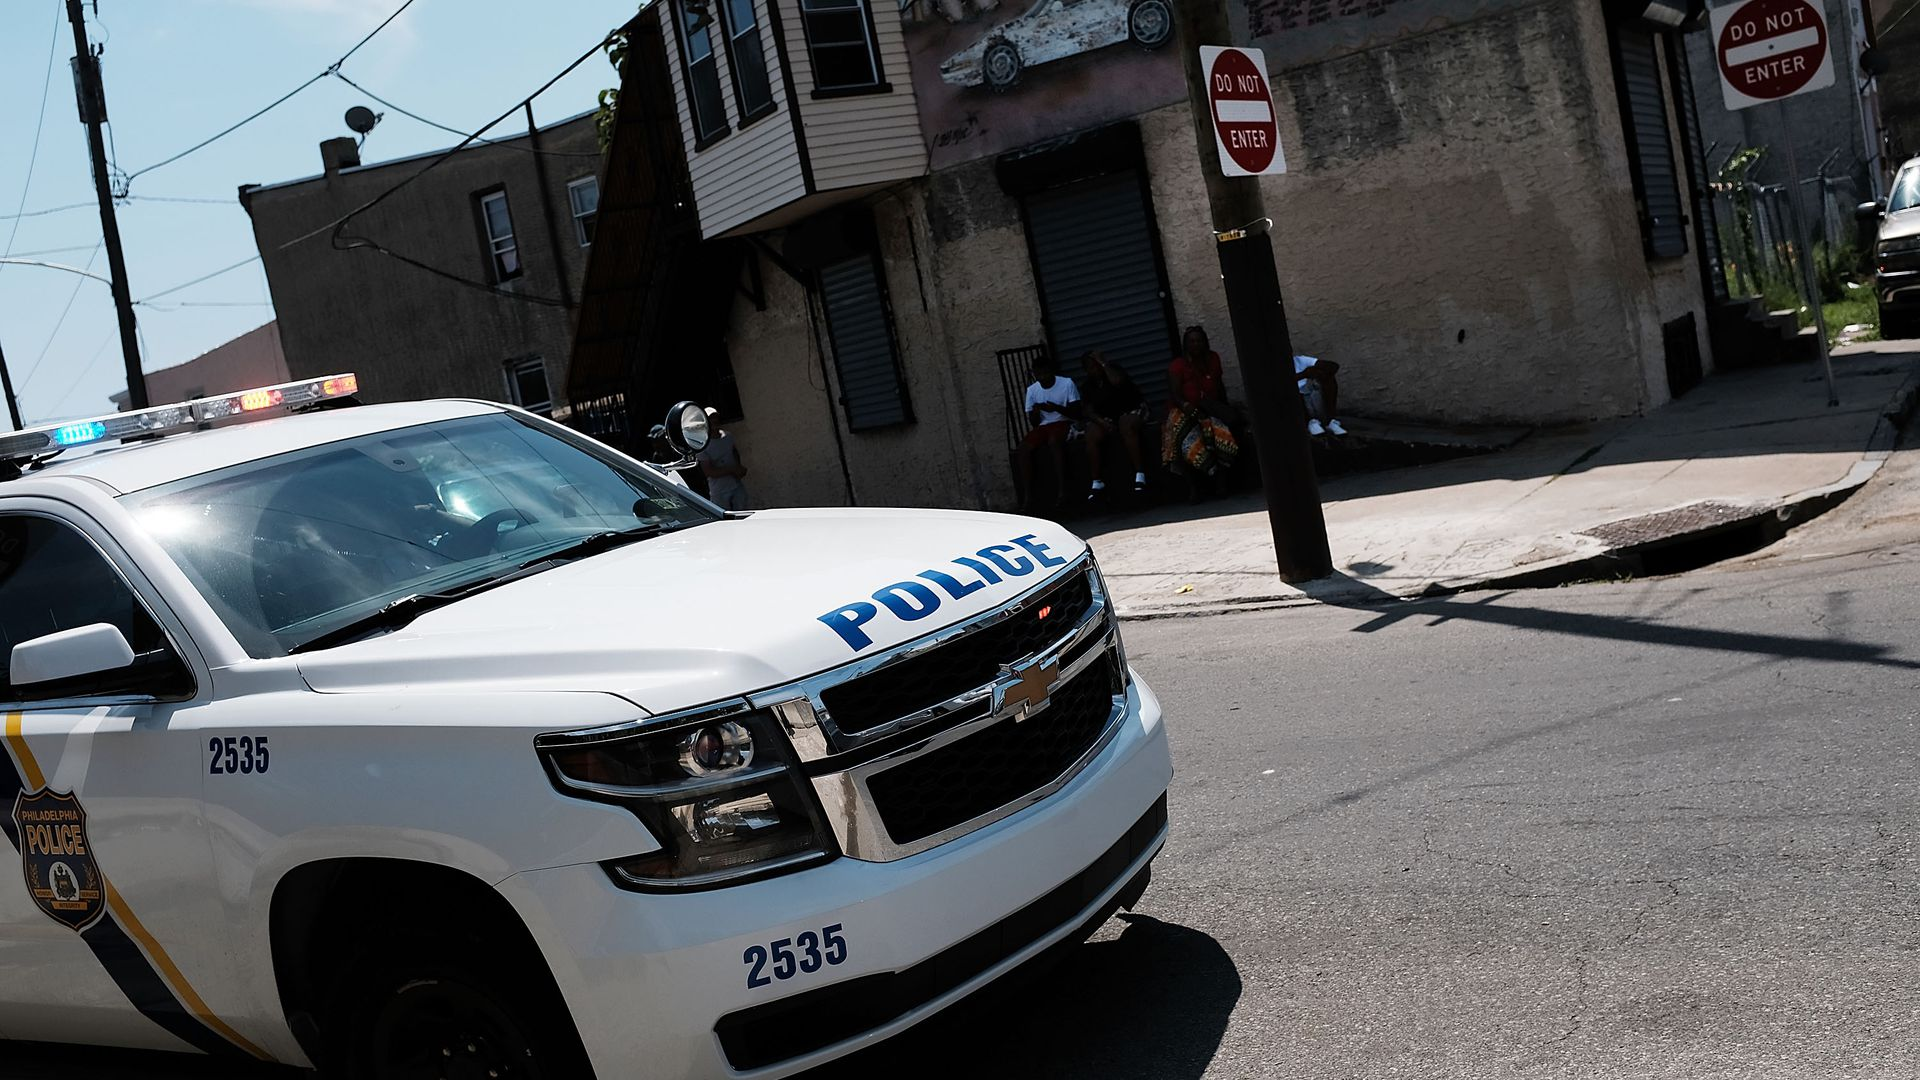 Police monitoring an area in Kensington section of Philadelphia ,which has become a hub for heroin use. Photo: Spencer Platt/Getty Images